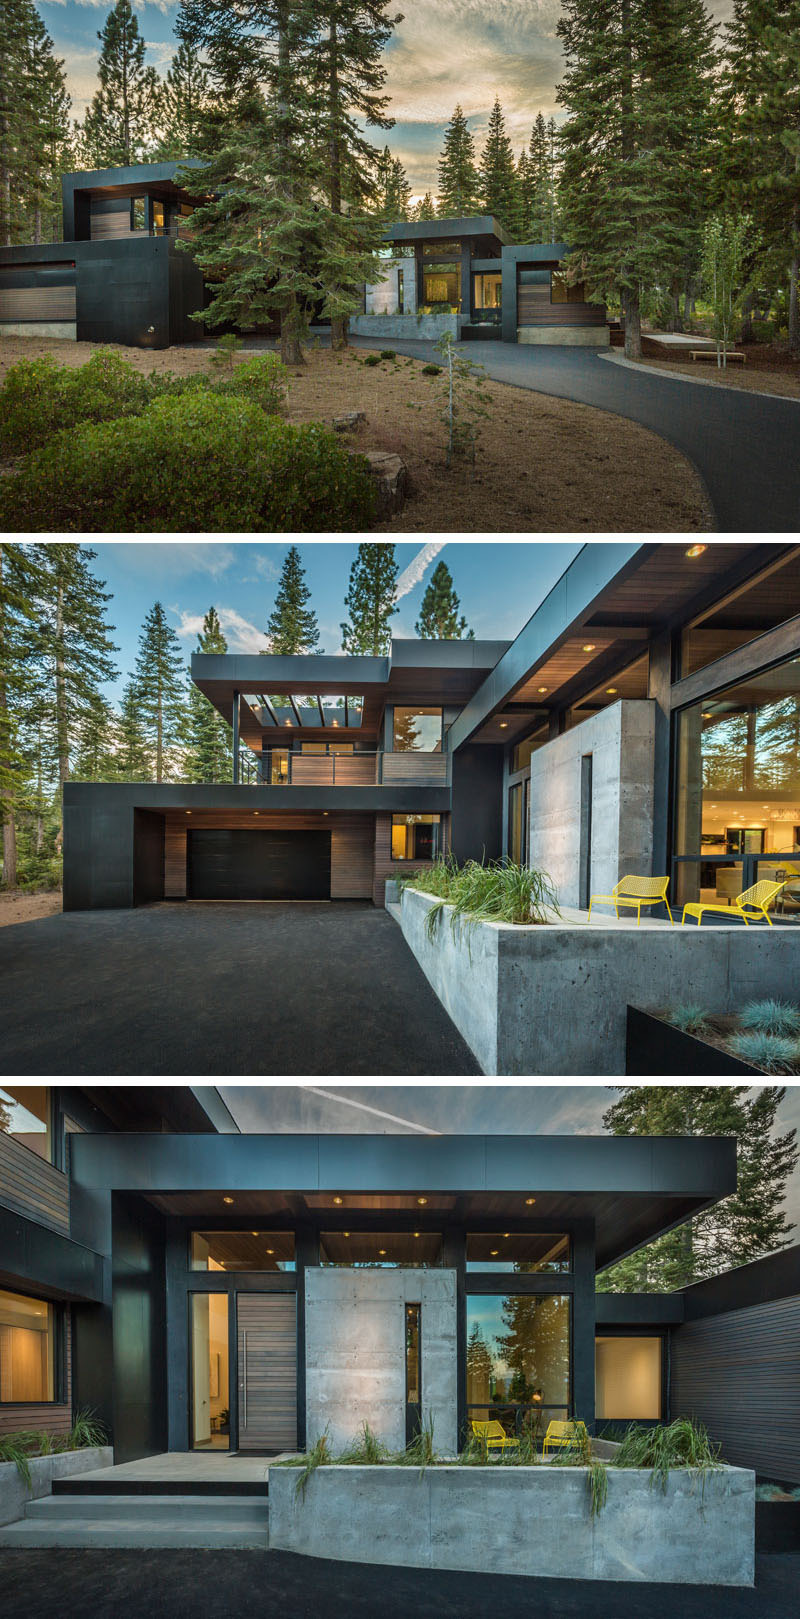 Beautiful Homes In the World Luxury 15 Modern Houses to Make You Feel at Home In the forest